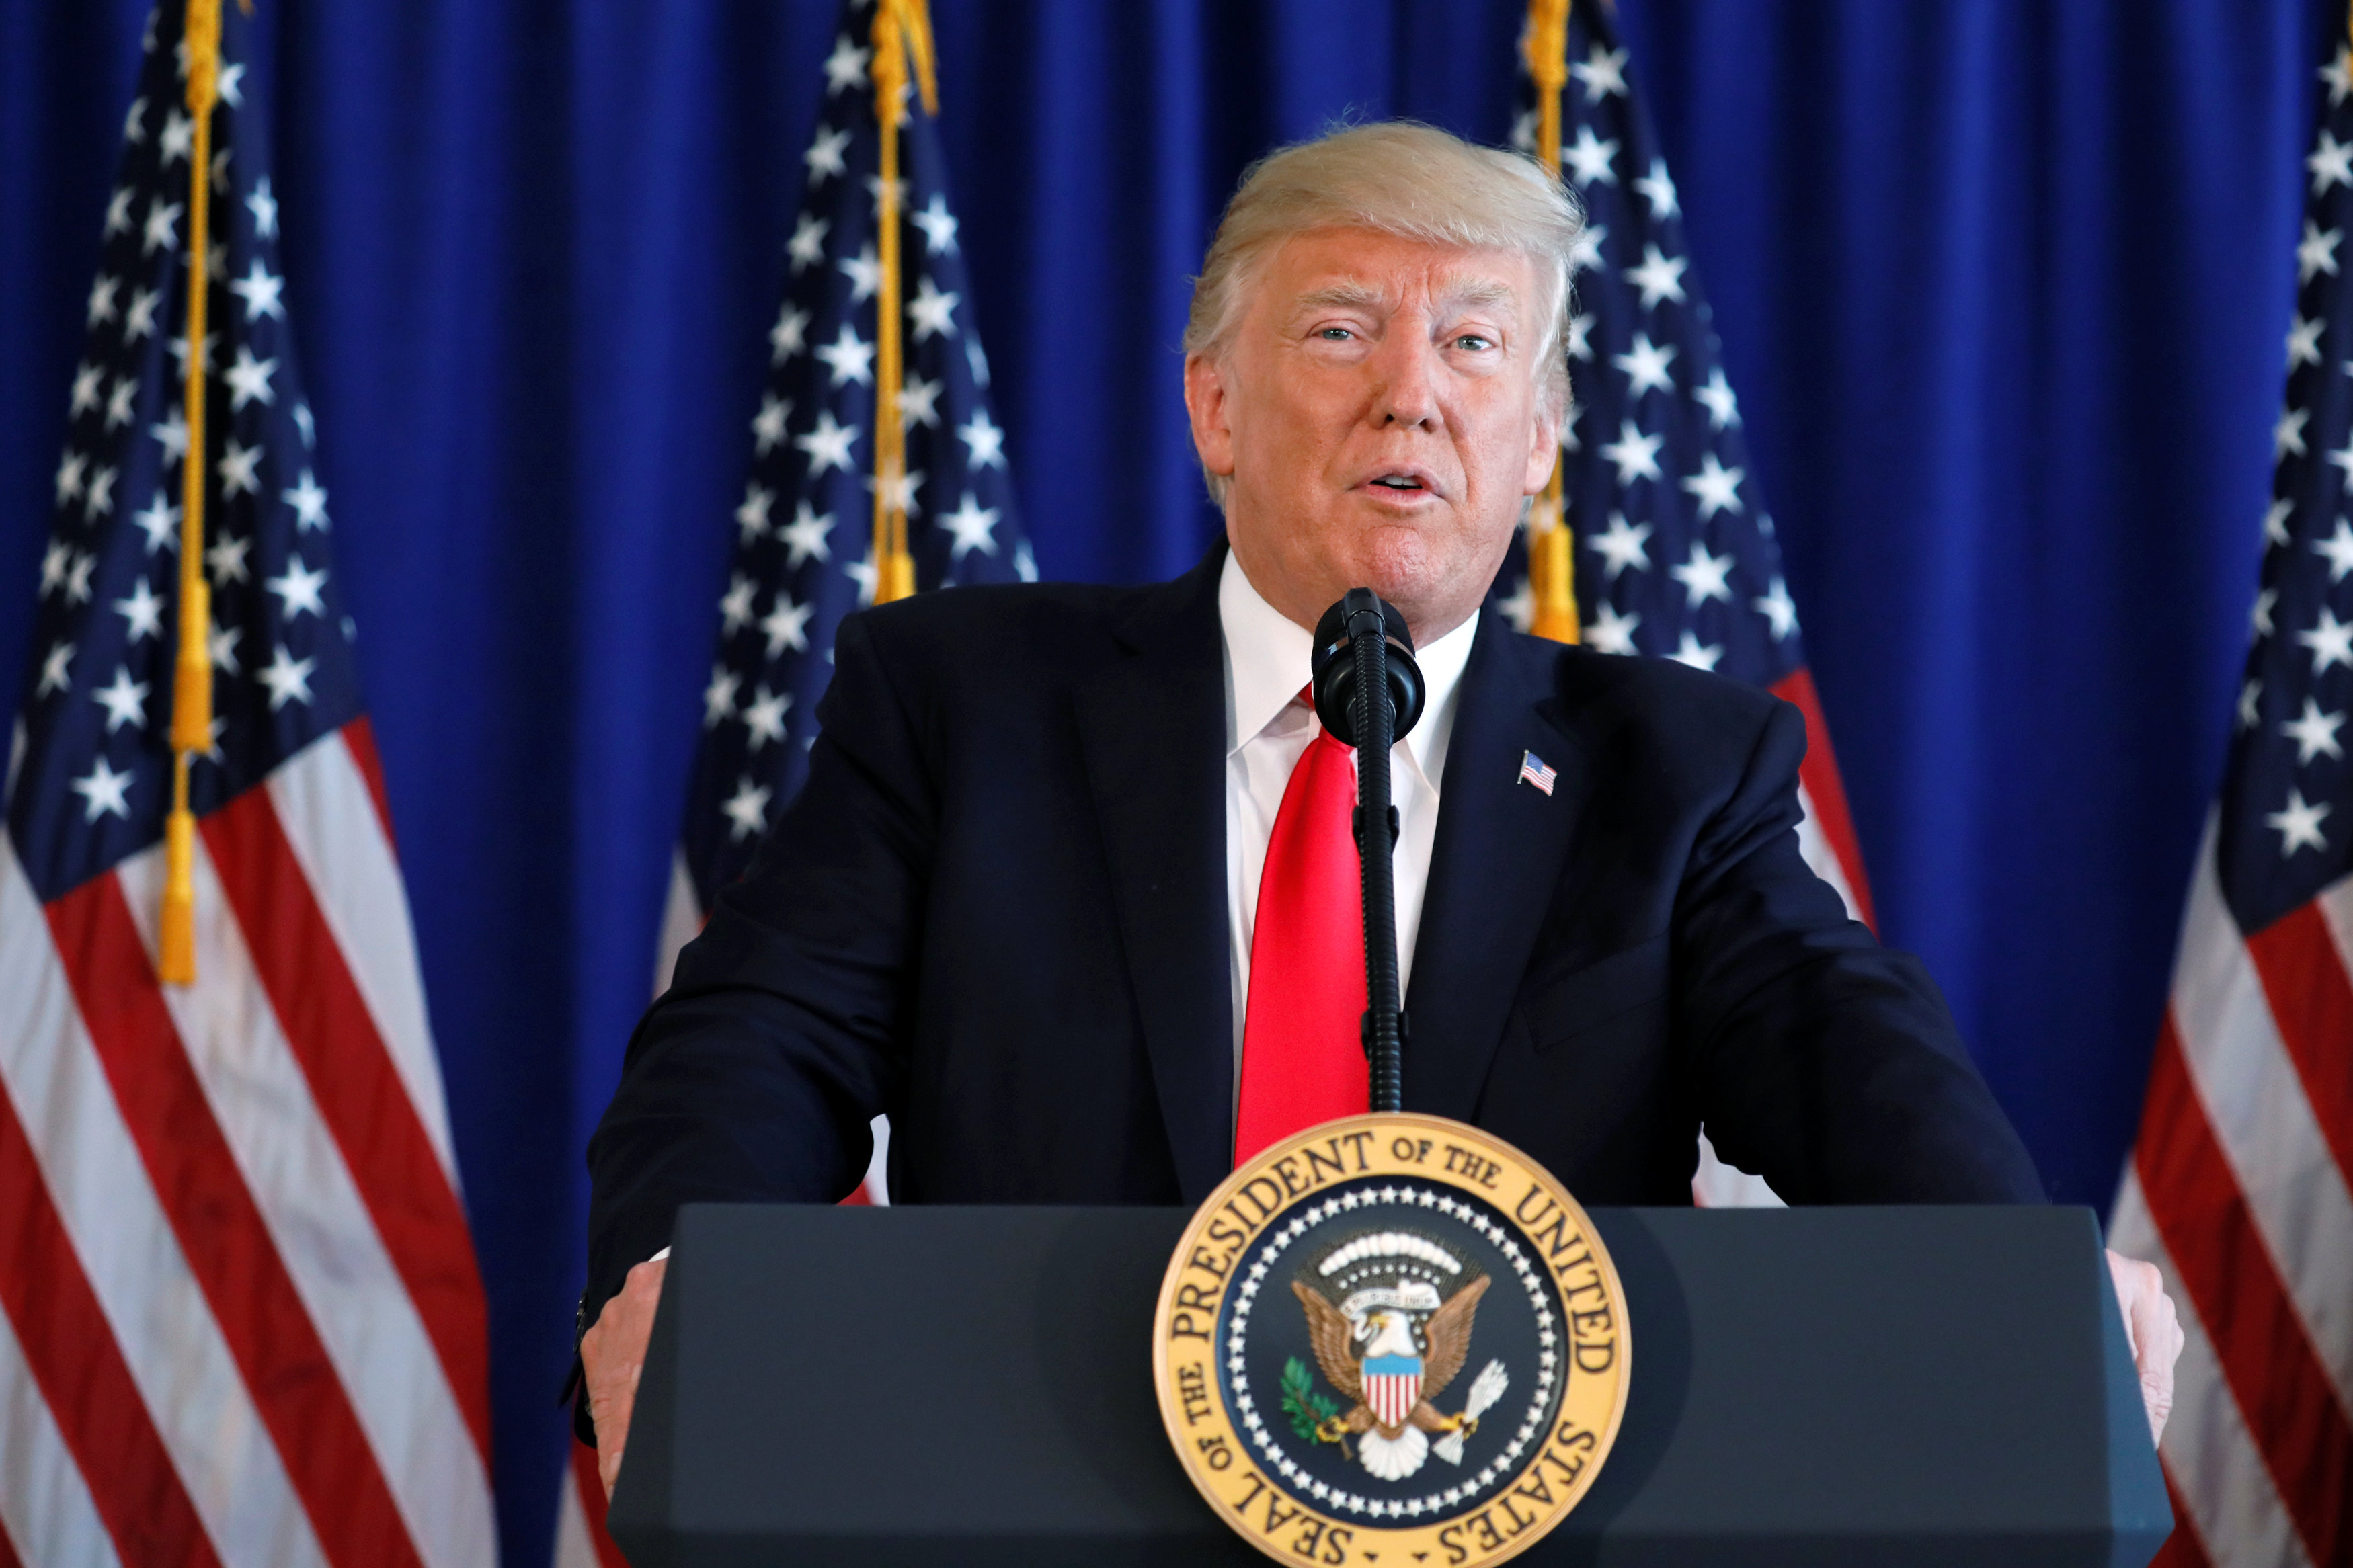 President Trump's reelection campaign releases television advertisement